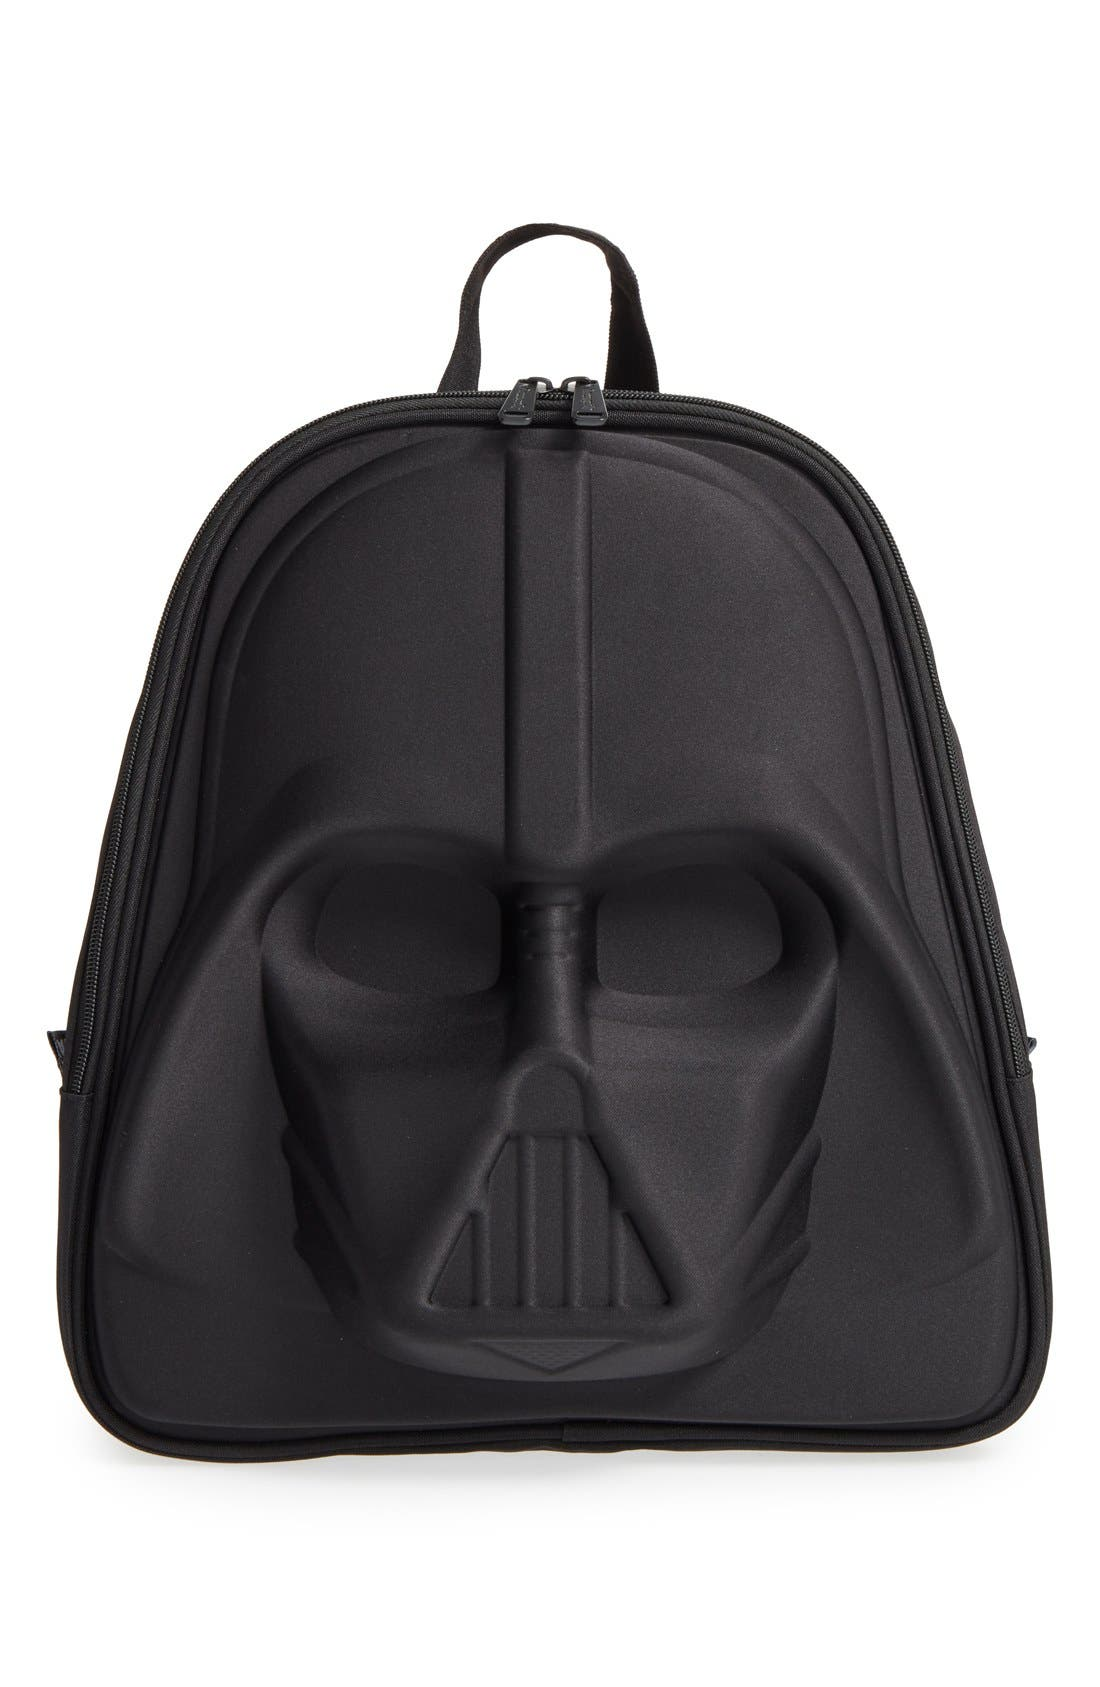 'Star Wars<sup>™</sup> - Darth Vader' Backpack,                             Main thumbnail 1, color,                             Black